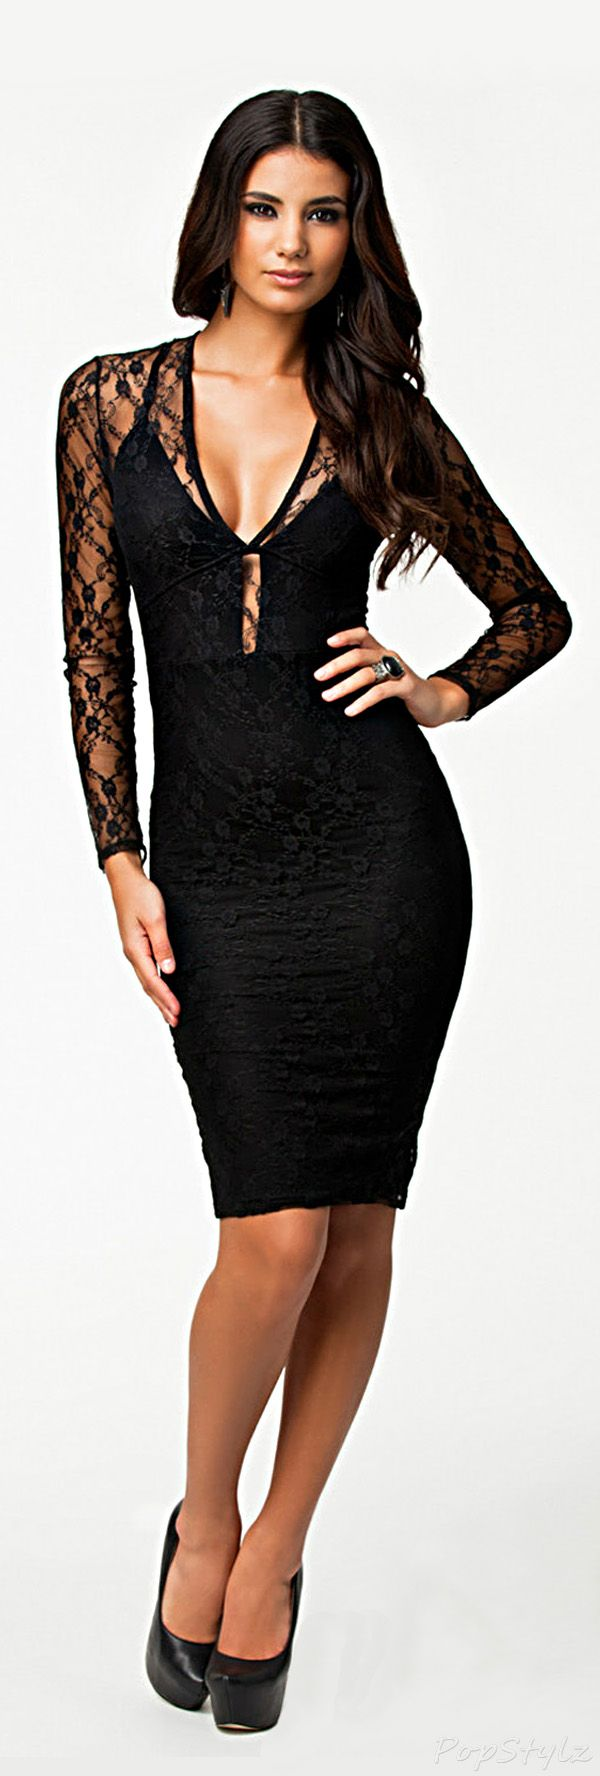 Lace dress open back  Allover Lace Open Back Dress  BeautyFashion  Pinterest  Black